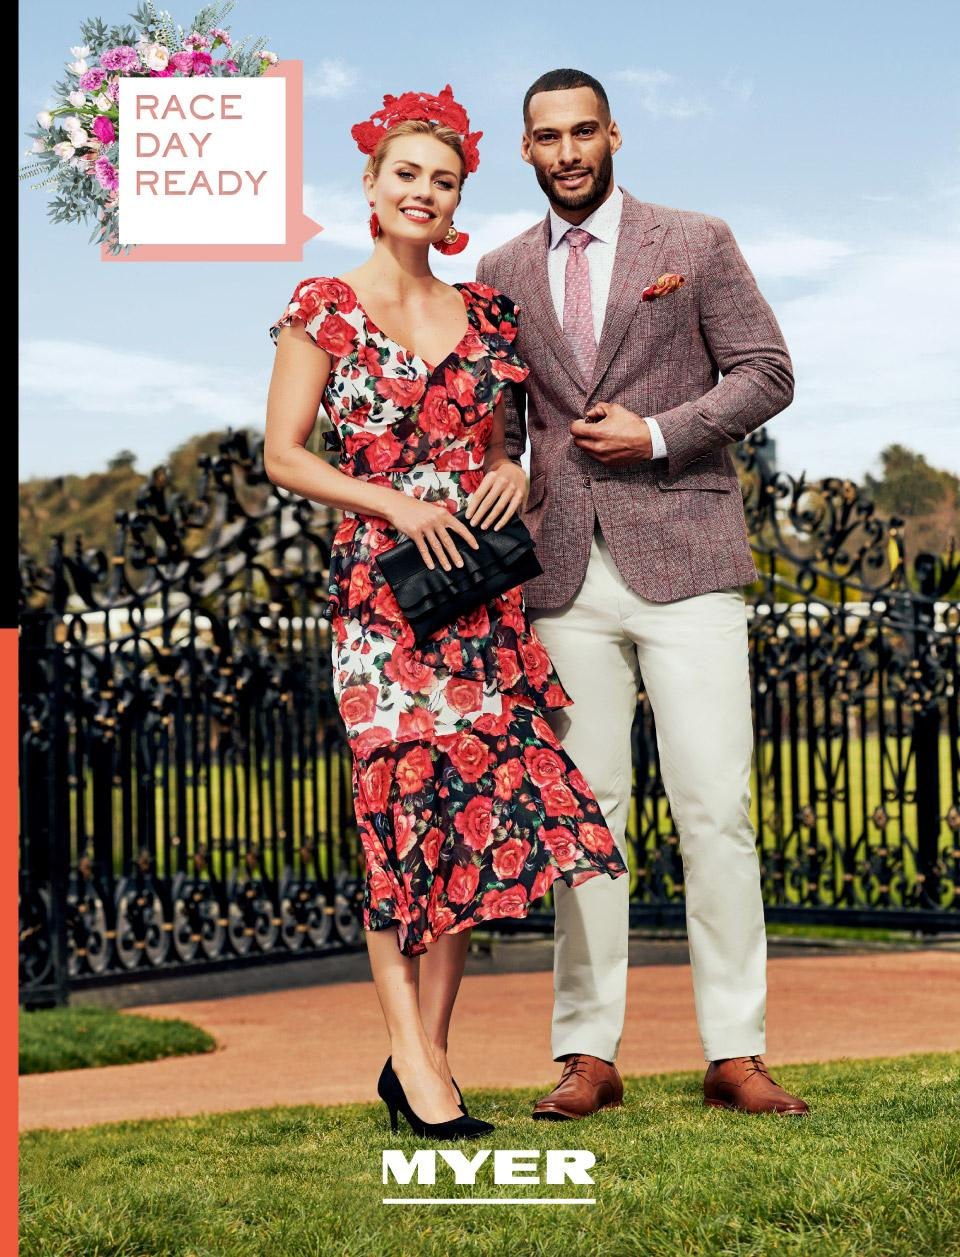 myer catalogue october 2018